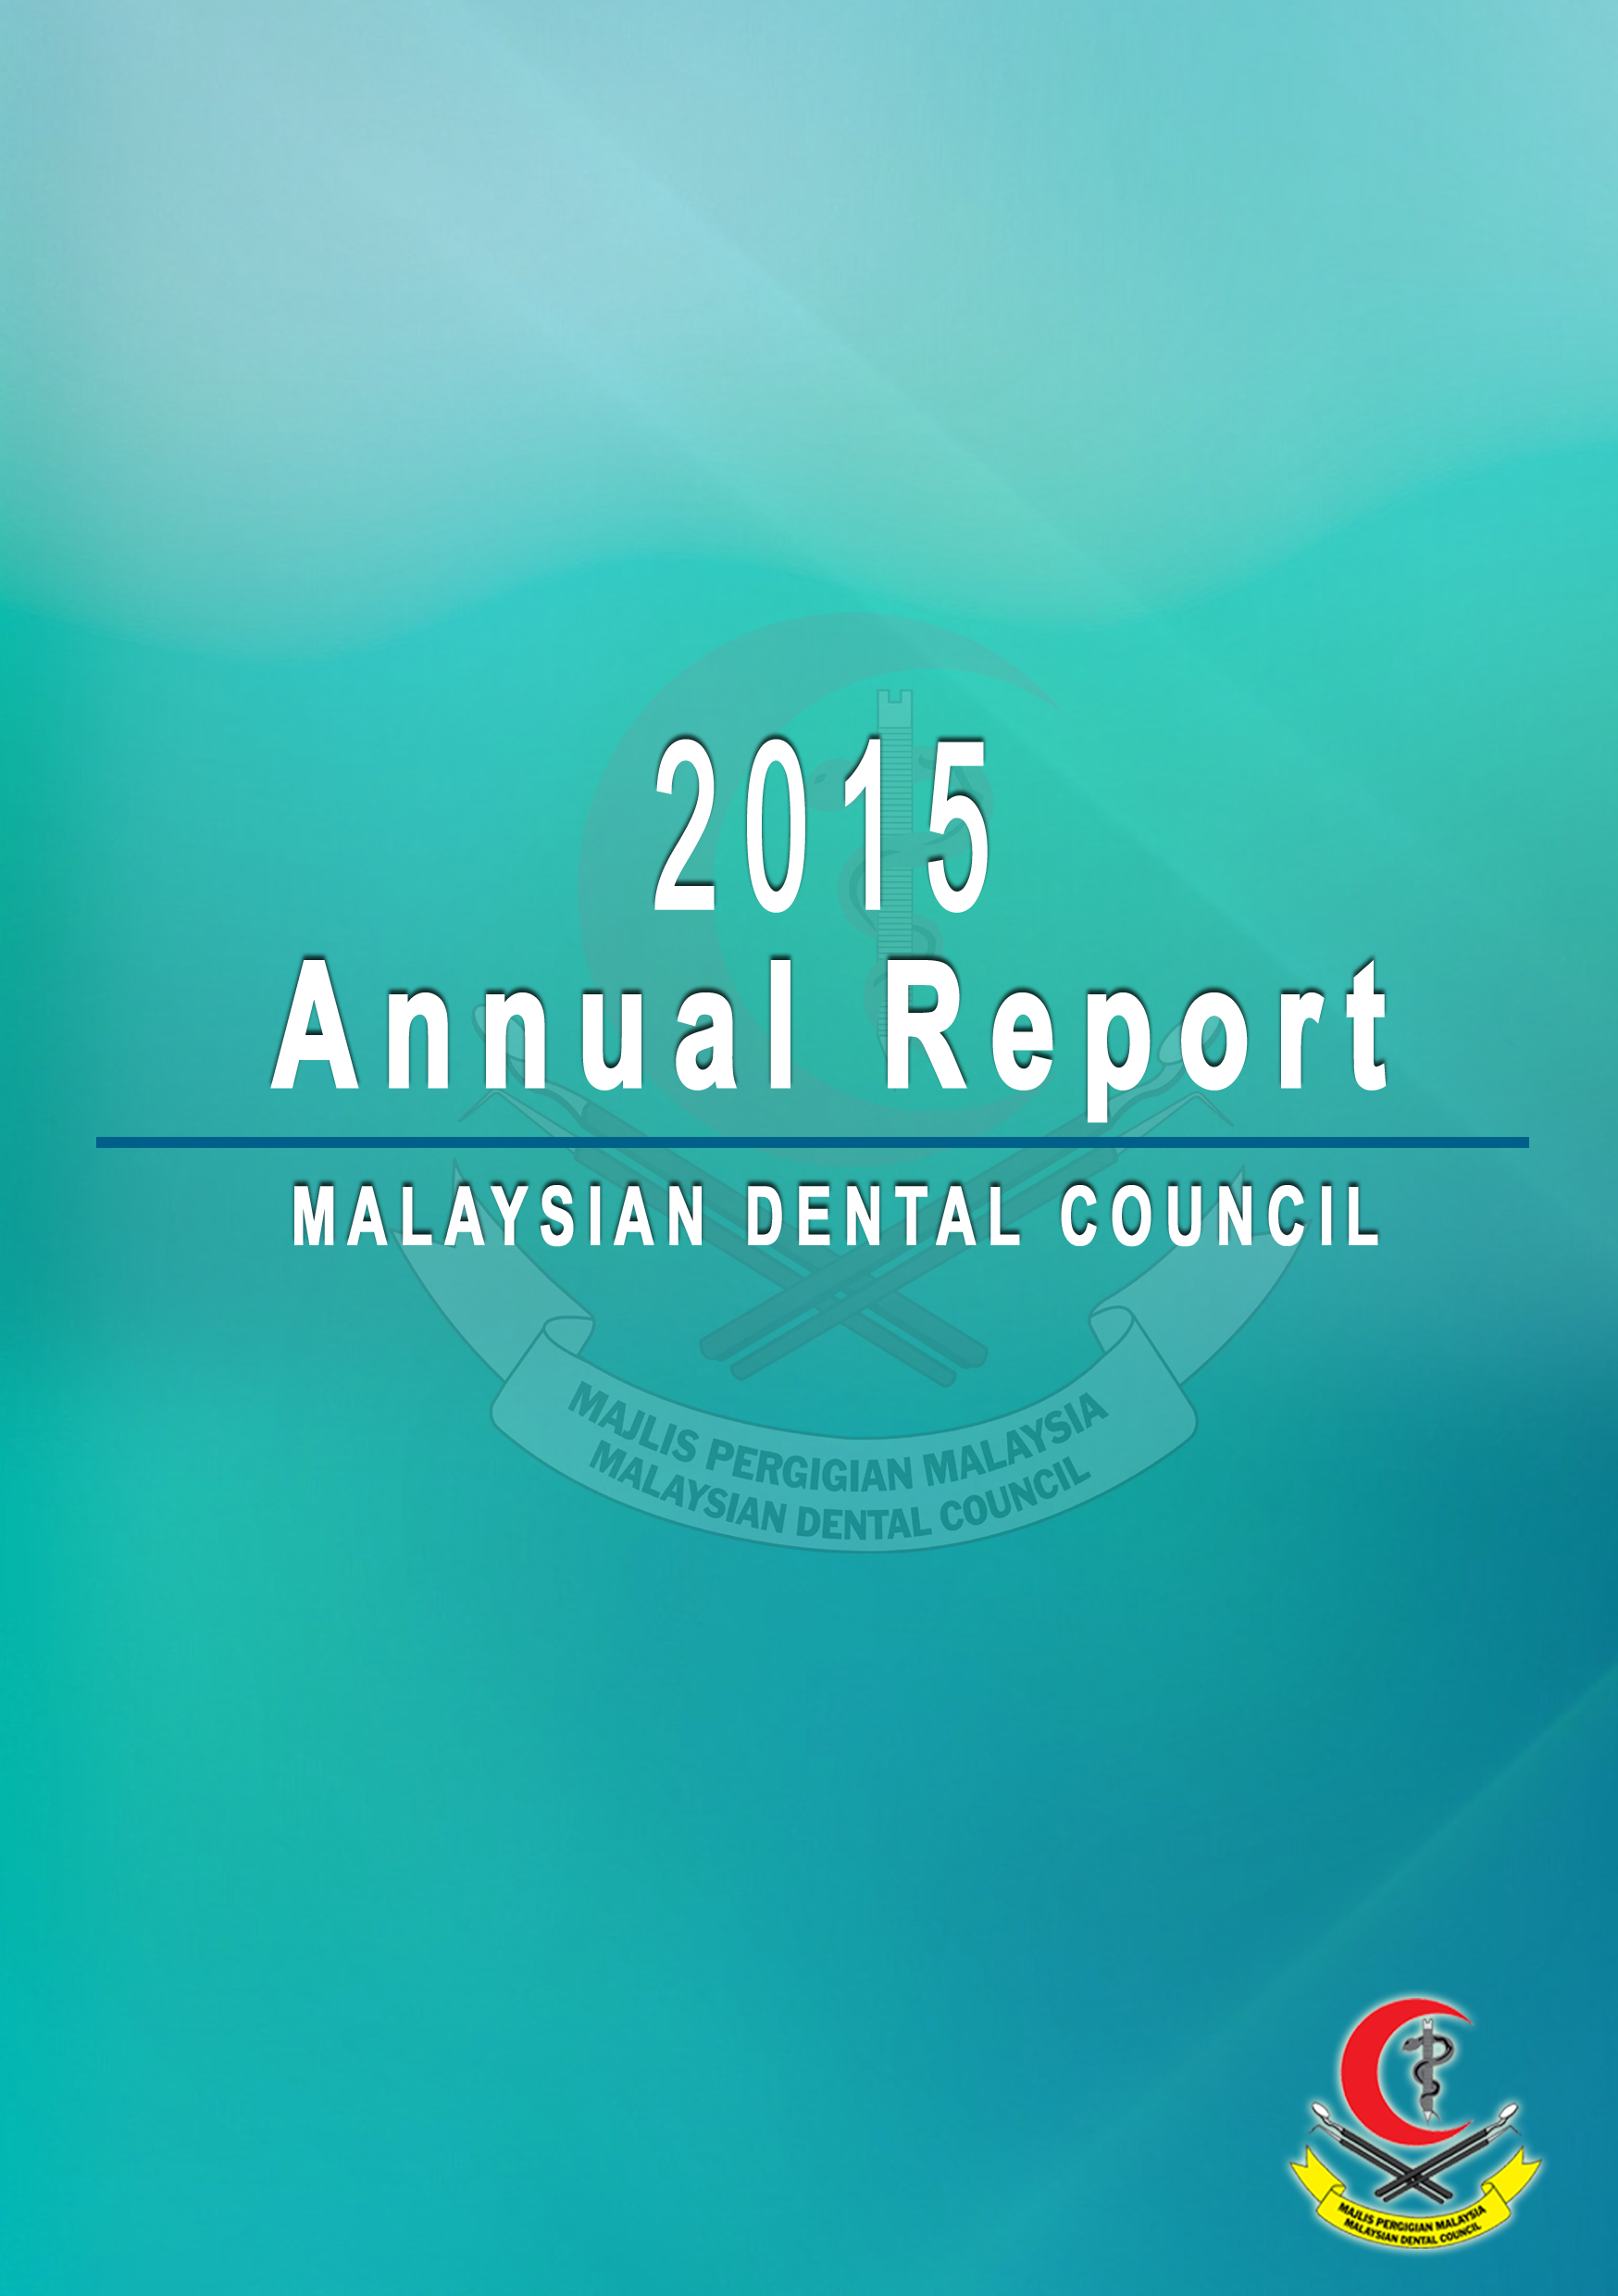 Malaysian Dental Council Annual Report 2015